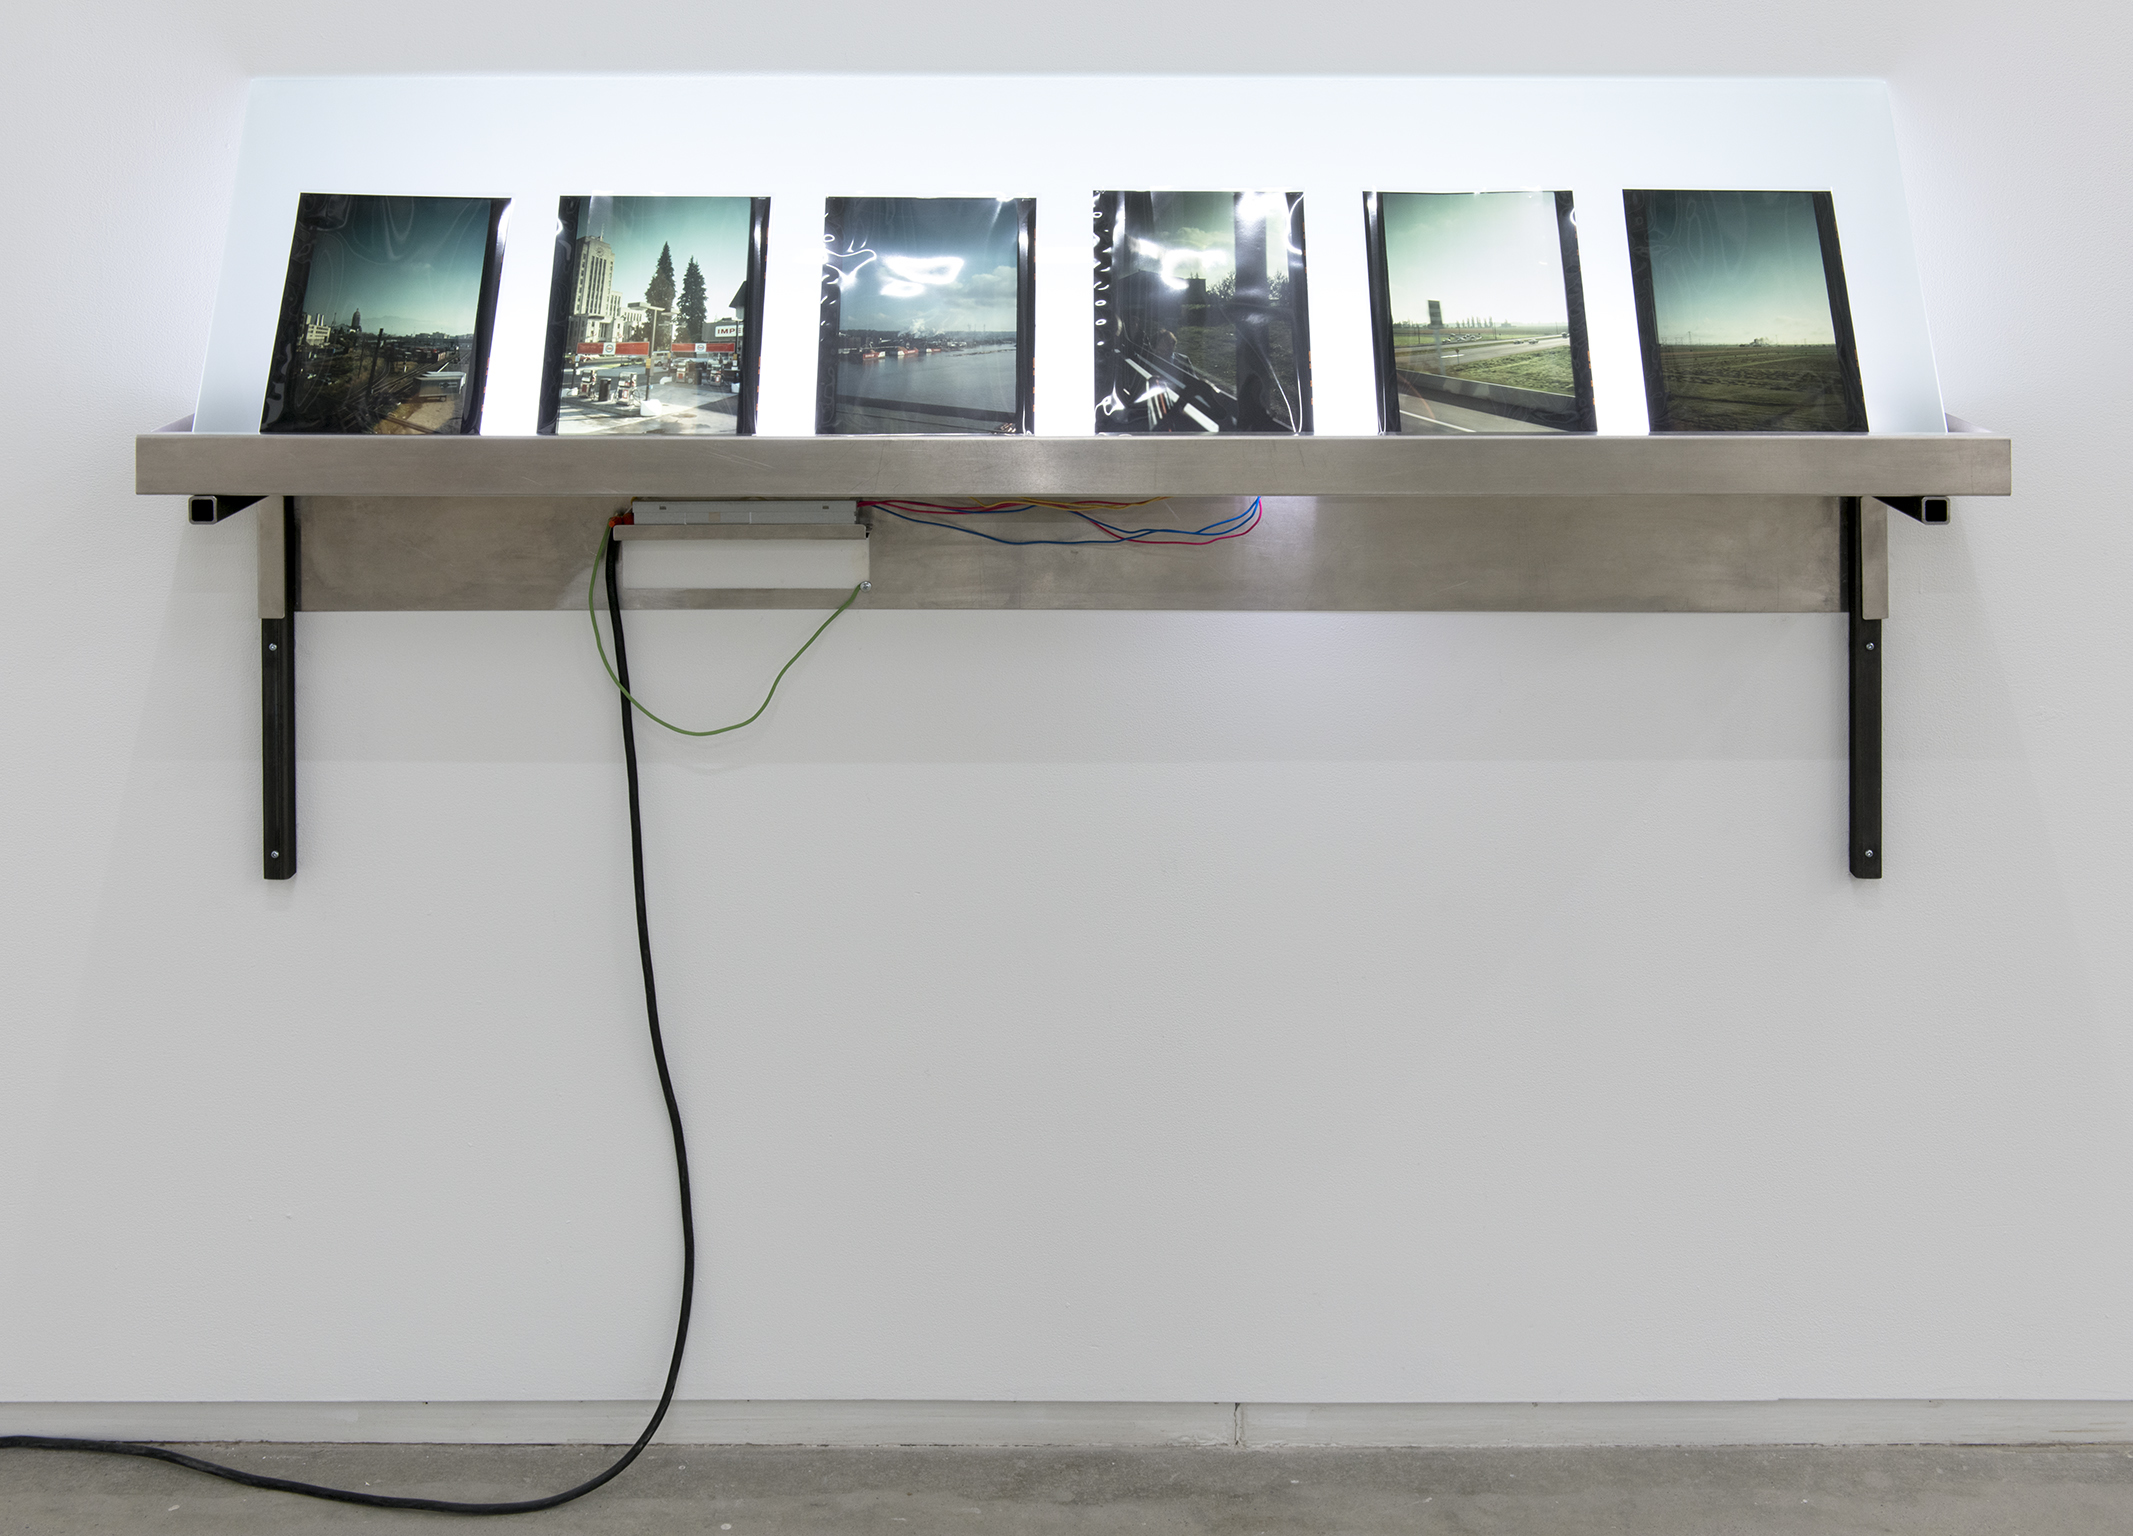 Christina Mackie, Lightbox, 2012, aluminum, steel, fluorescent lamps, glass, neoprene, photographic transparencies 1973, 30 x 66 x 8 in. (76 x 168 x 21 cm) by